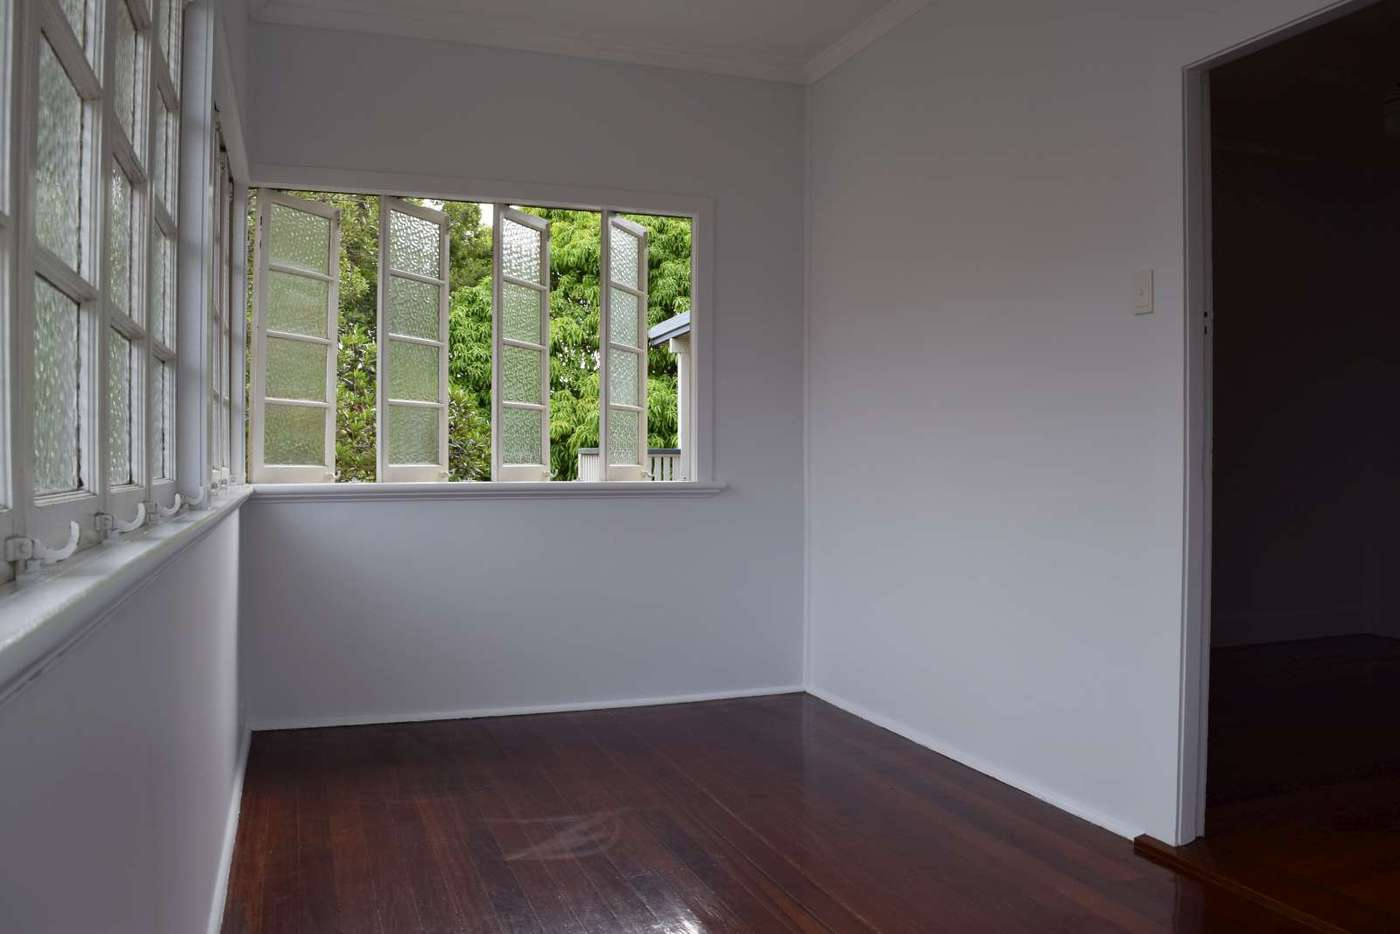 Seventh view of Homely house listing, 11 Avesnes Street, Holland Park QLD 4121